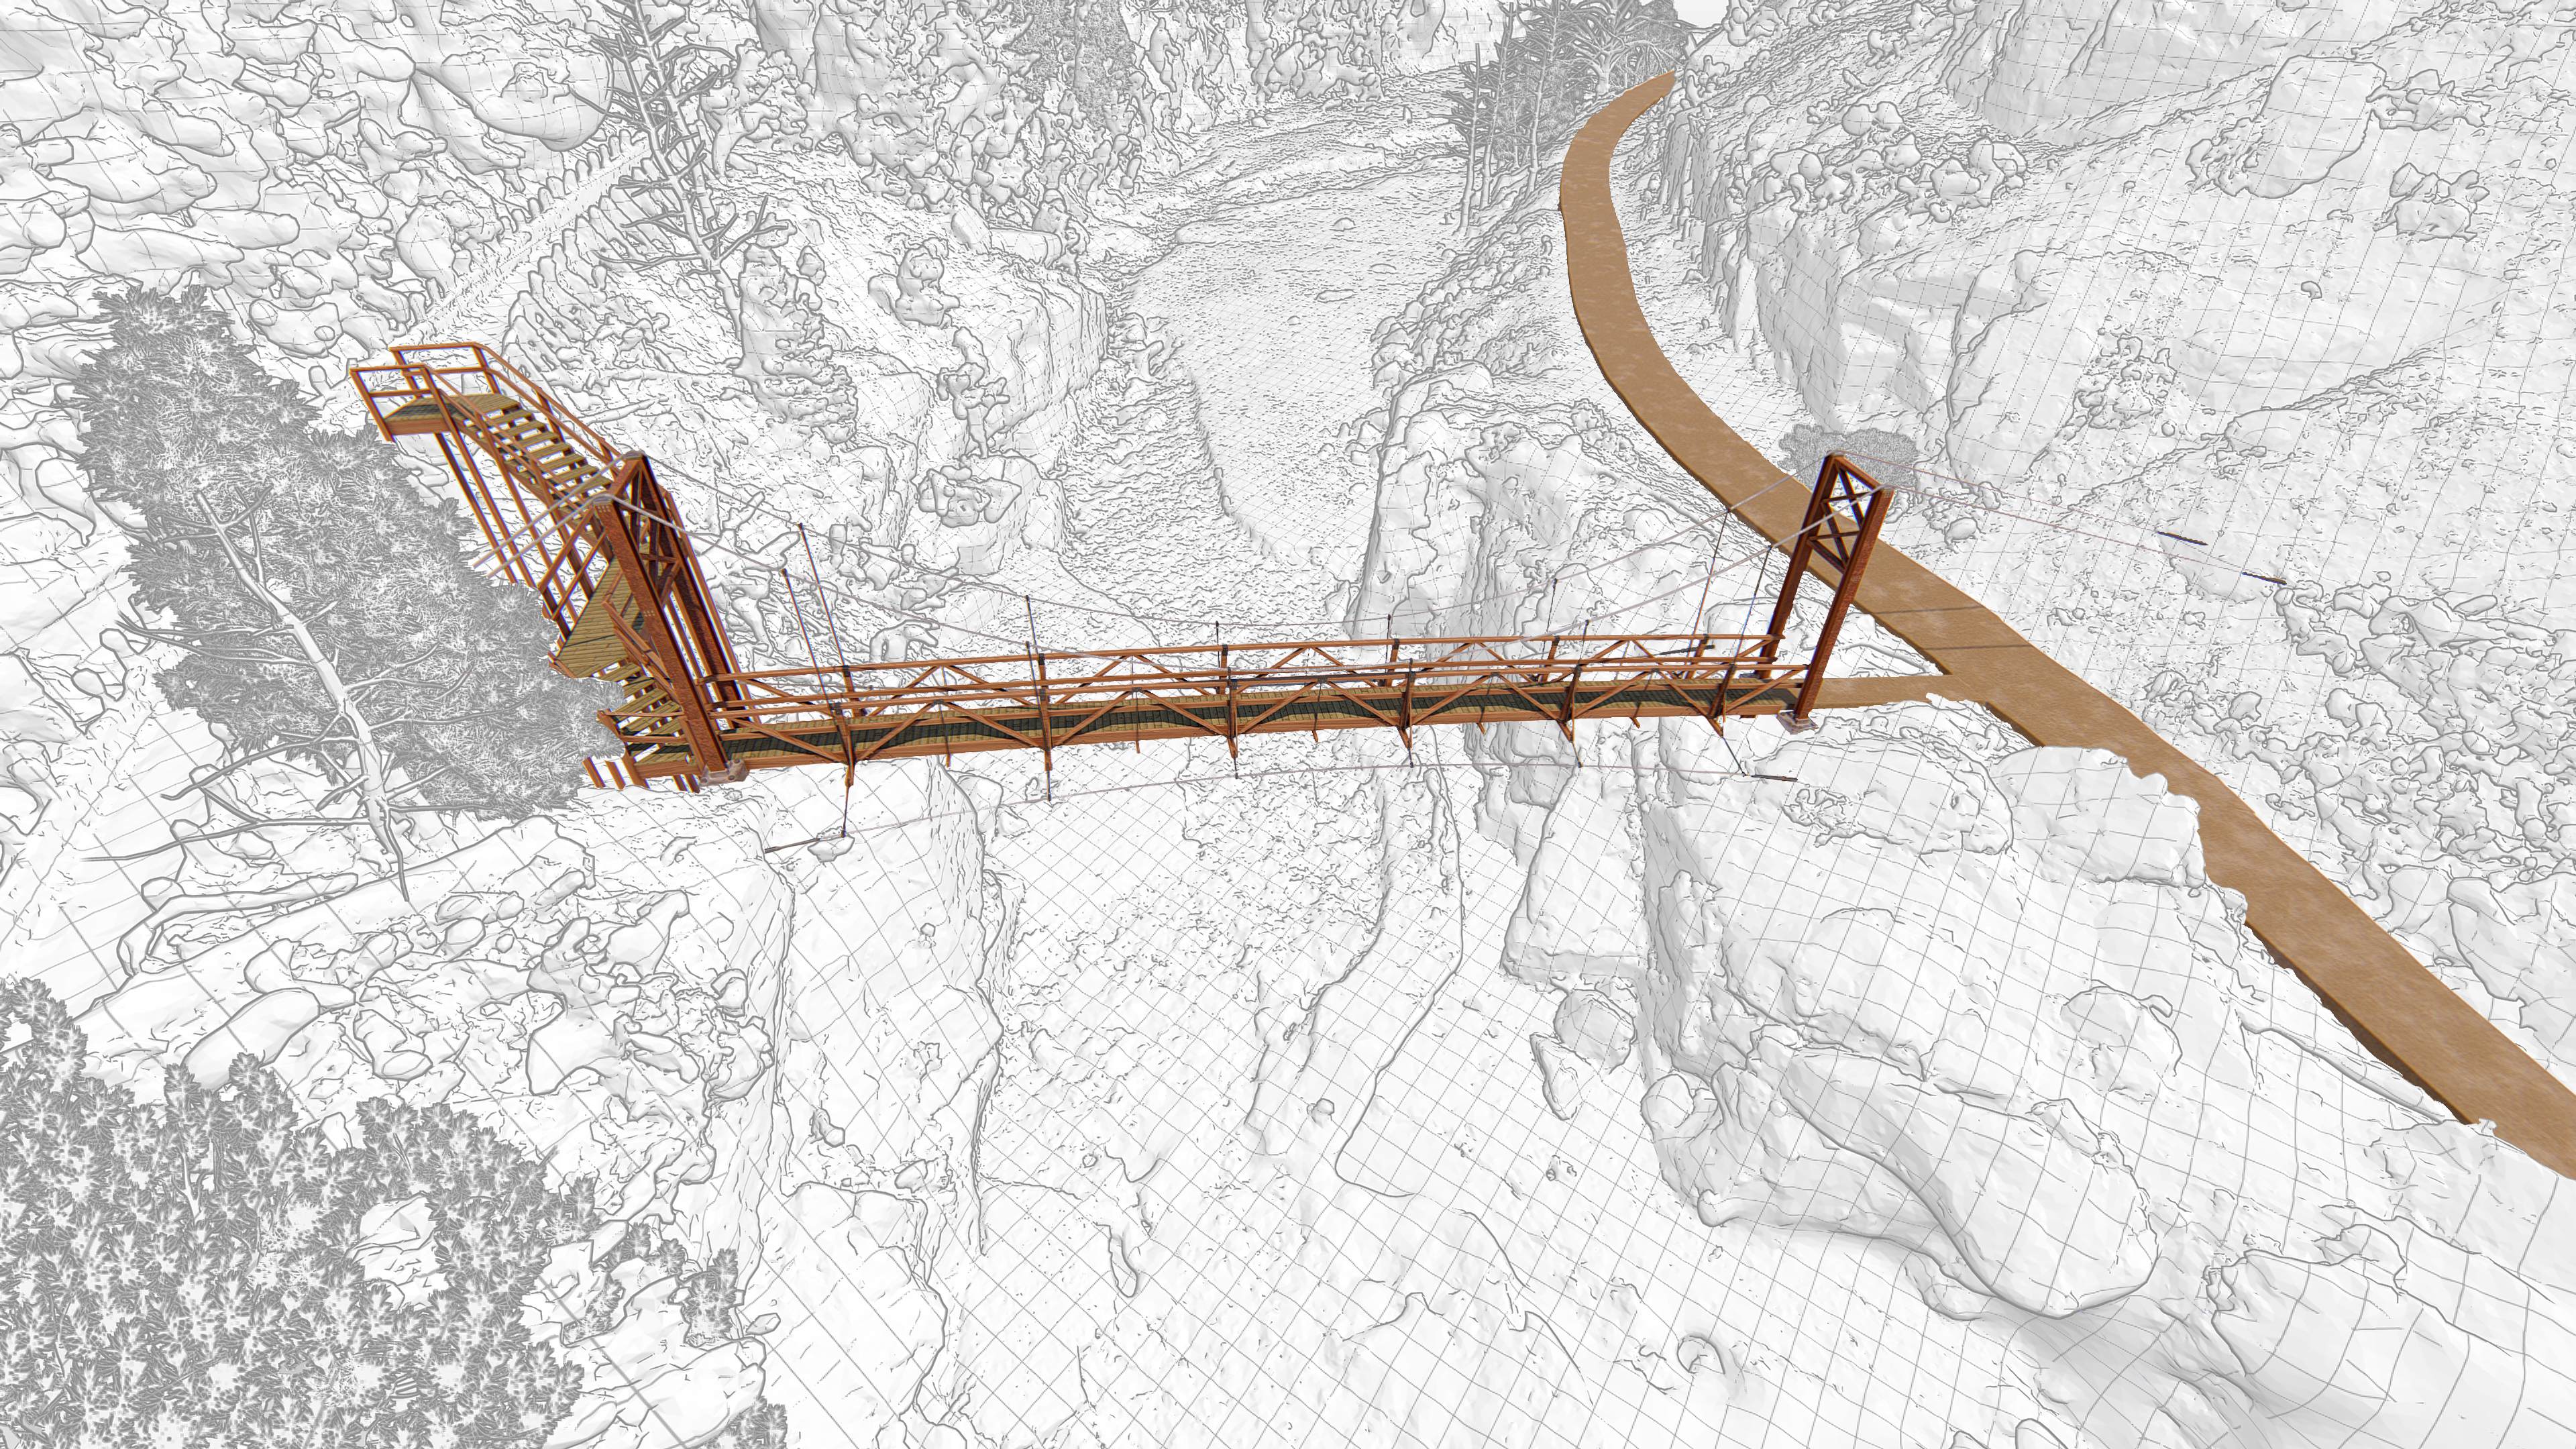 3D bridge model and drone data